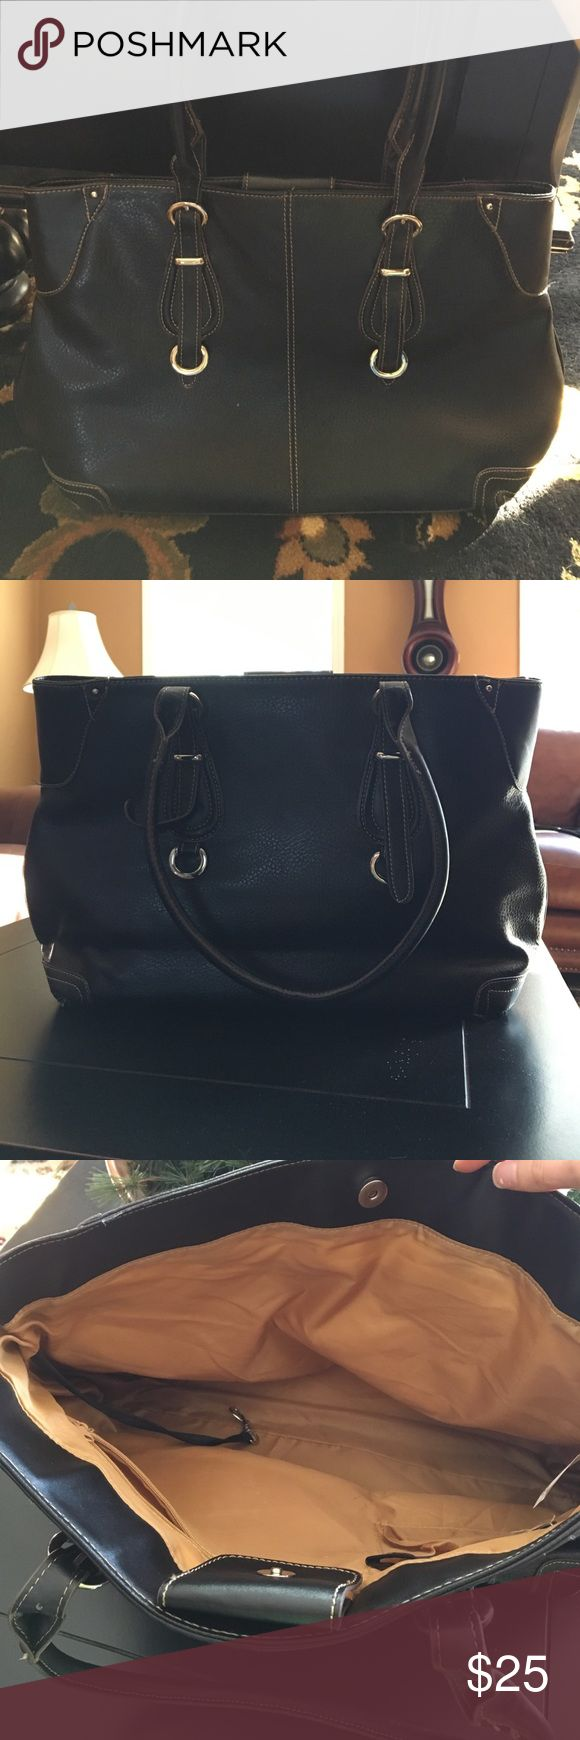 """Faux Leather Handbag Super nice and lightly used handbag! One of the buckles is a little iffy, so the strap has been tied in a knot around it, which has made it a little bent out of shape. Dimensions: 20""""x 12"""". The interior is tan and very roomy. No exterior pockets or compartments, but there are two inside (including one large one that zips). Brand is unknown. Offers welcome! Bags Shoulder Bags"""